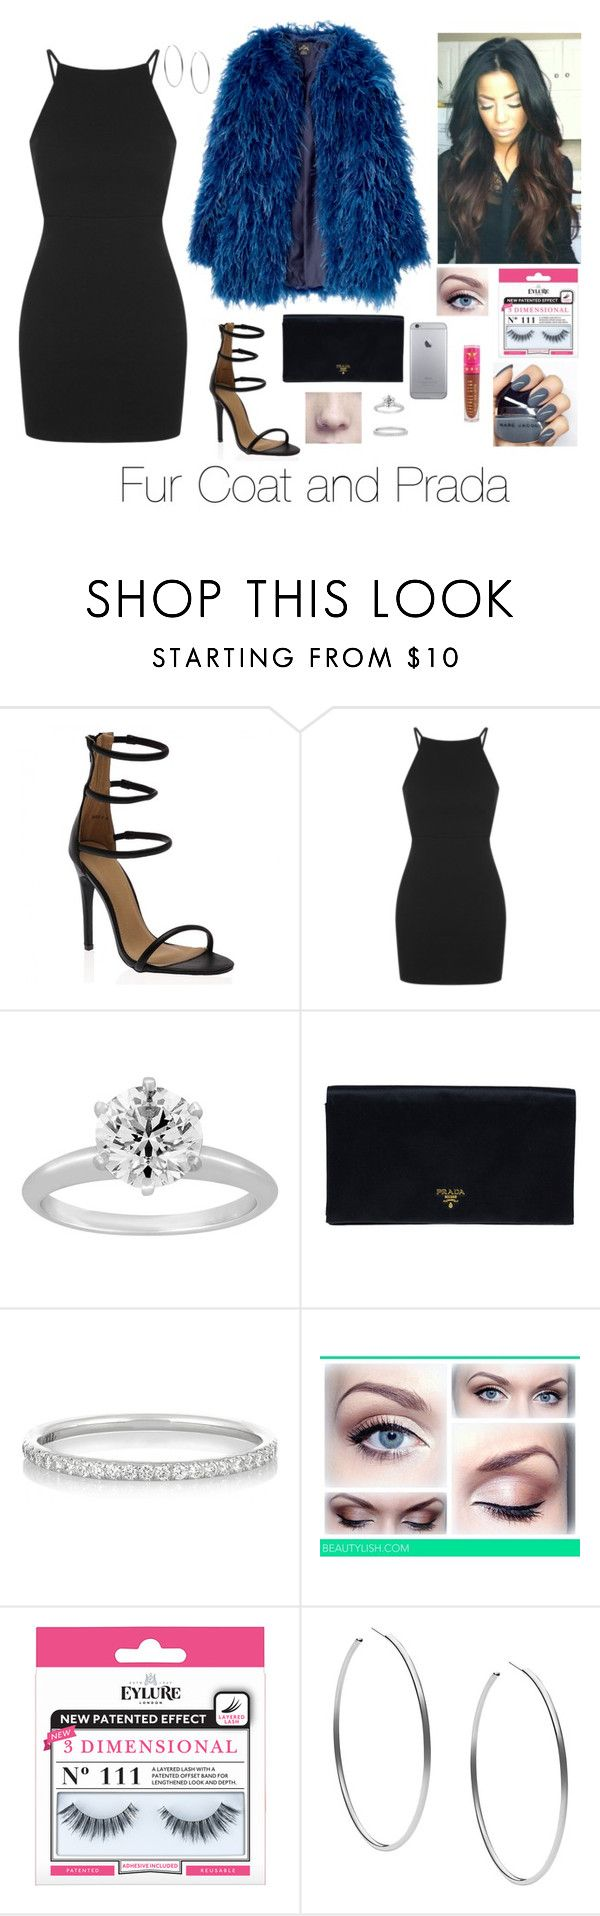 """Fur Coat and Prada"" by brenda-all-over ❤ liked on Polyvore featuring Topshop, Tiffany & Co., Prada, Ileana Makri, eylure, Michael Kors, Jeffree Star, Sexy, clubbing and eyemakeup"